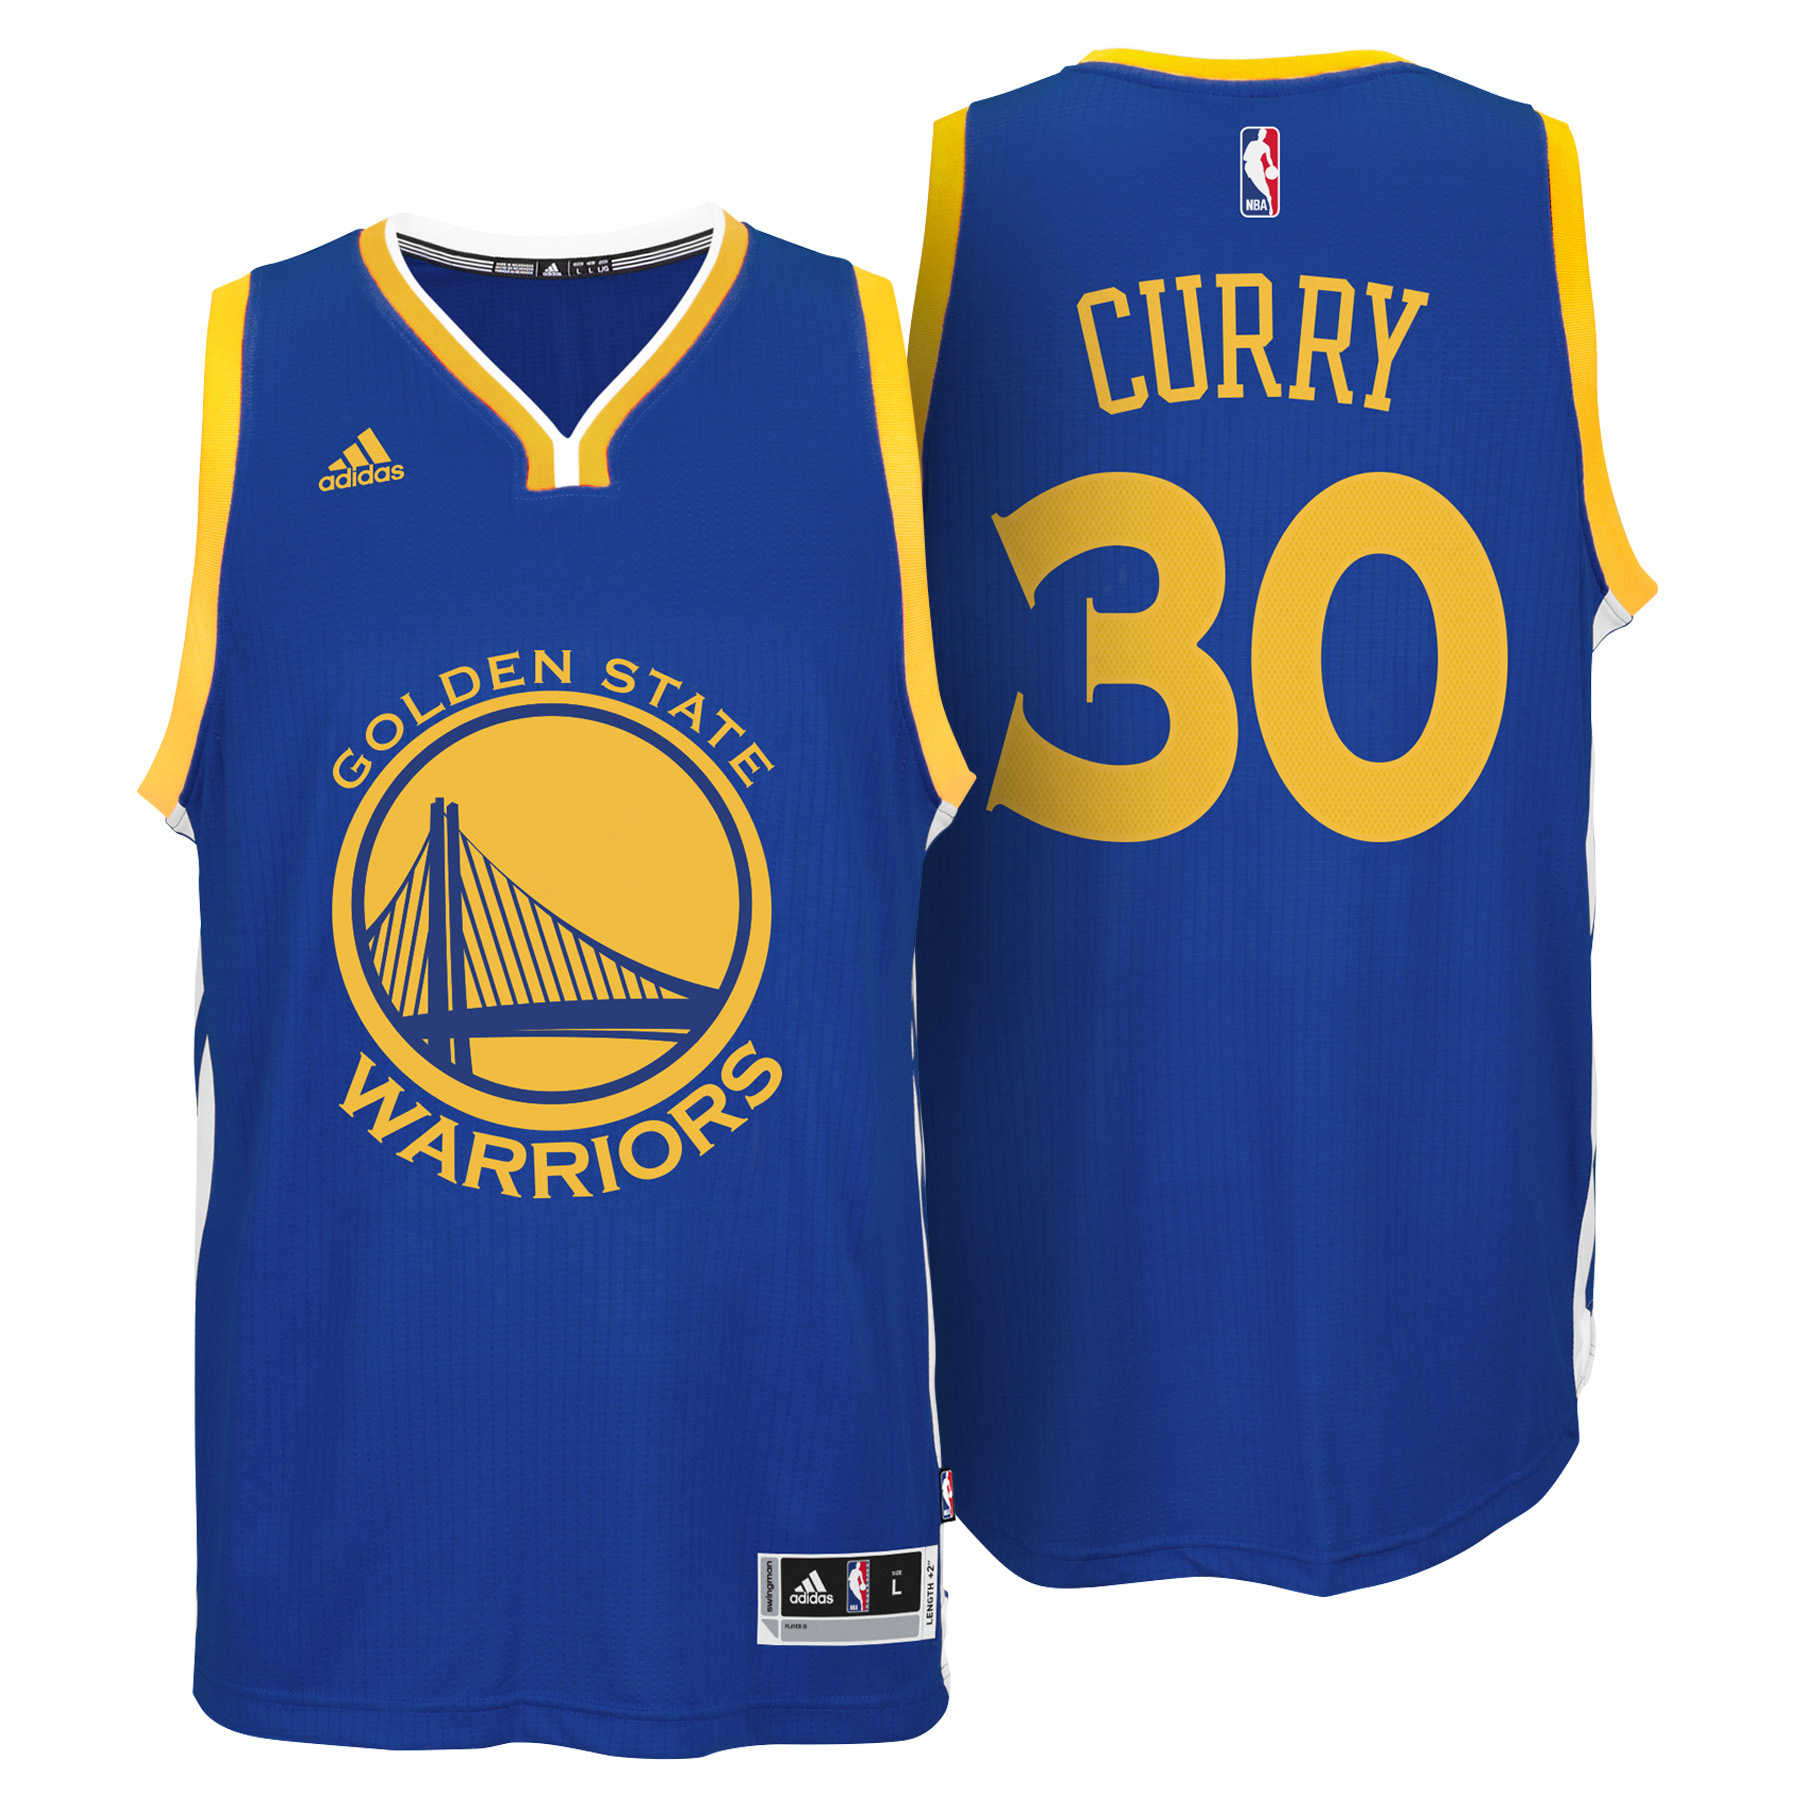 Golden State Warriors Road Swingman Jersey - Stephen Curry - Mens